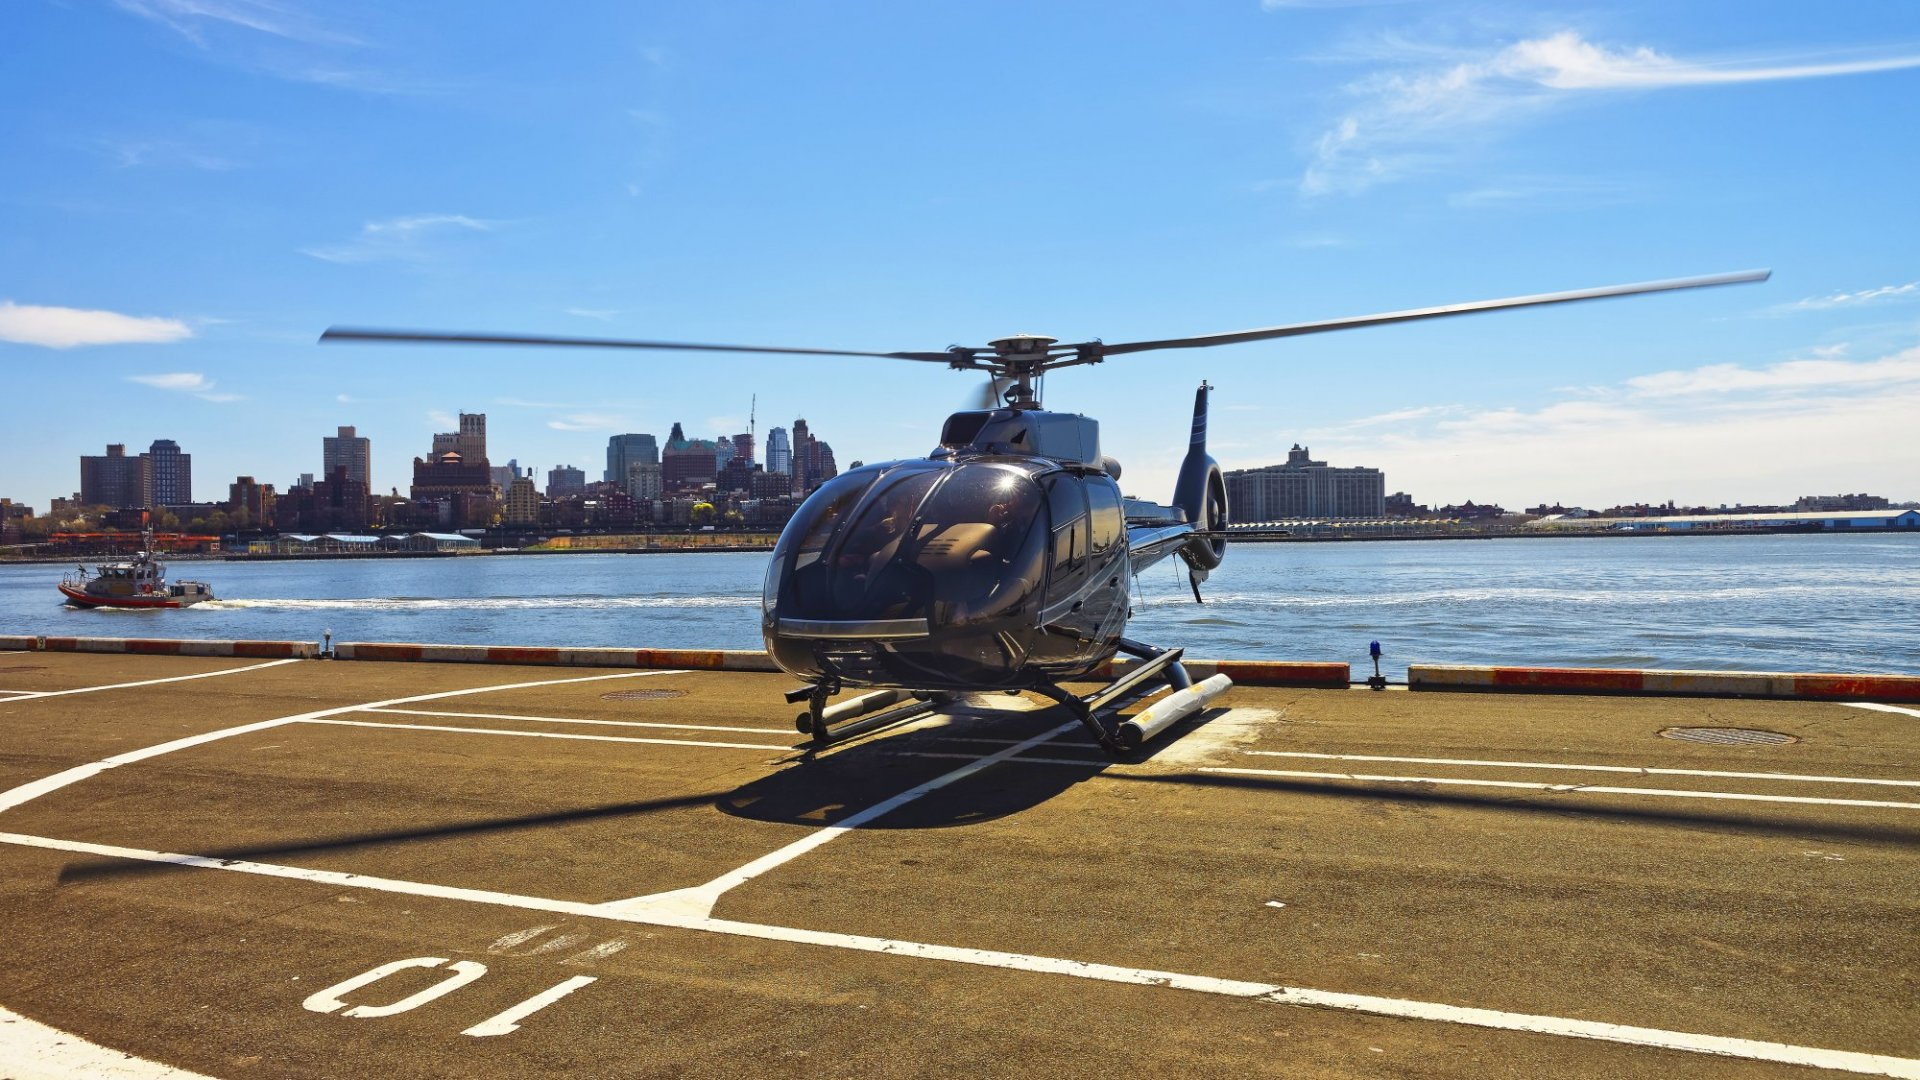 Ever Wanted to Casually Drop $200 on a Helicopter Ride? Good News: Uber Copter Is Launching Next Month